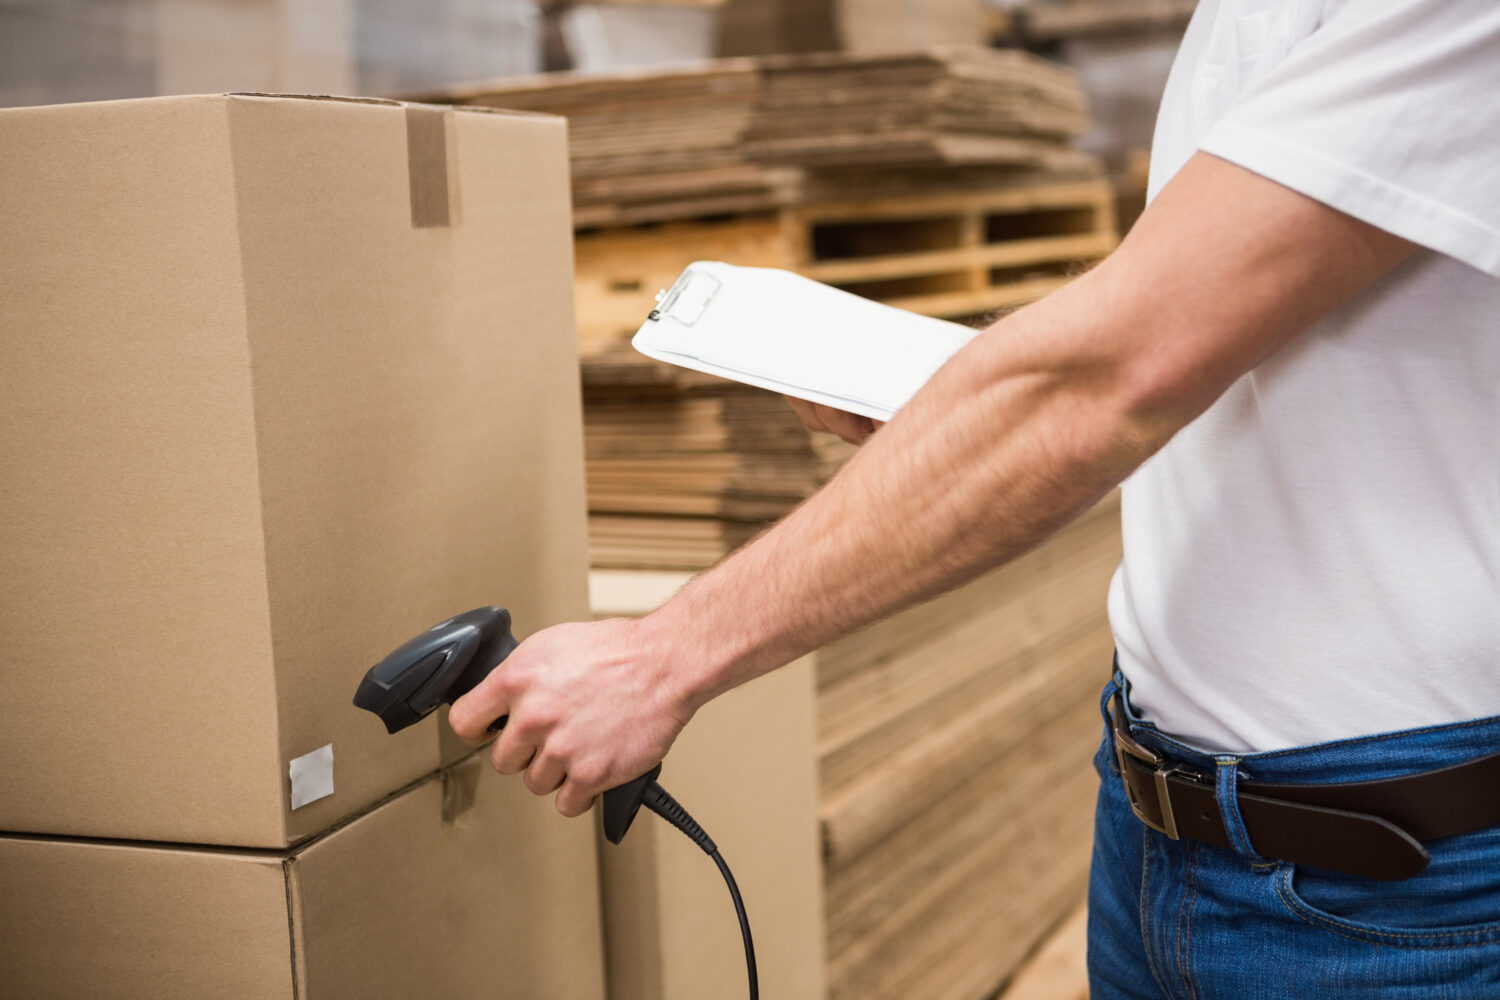 warehouse worker using barcoding inventory systems